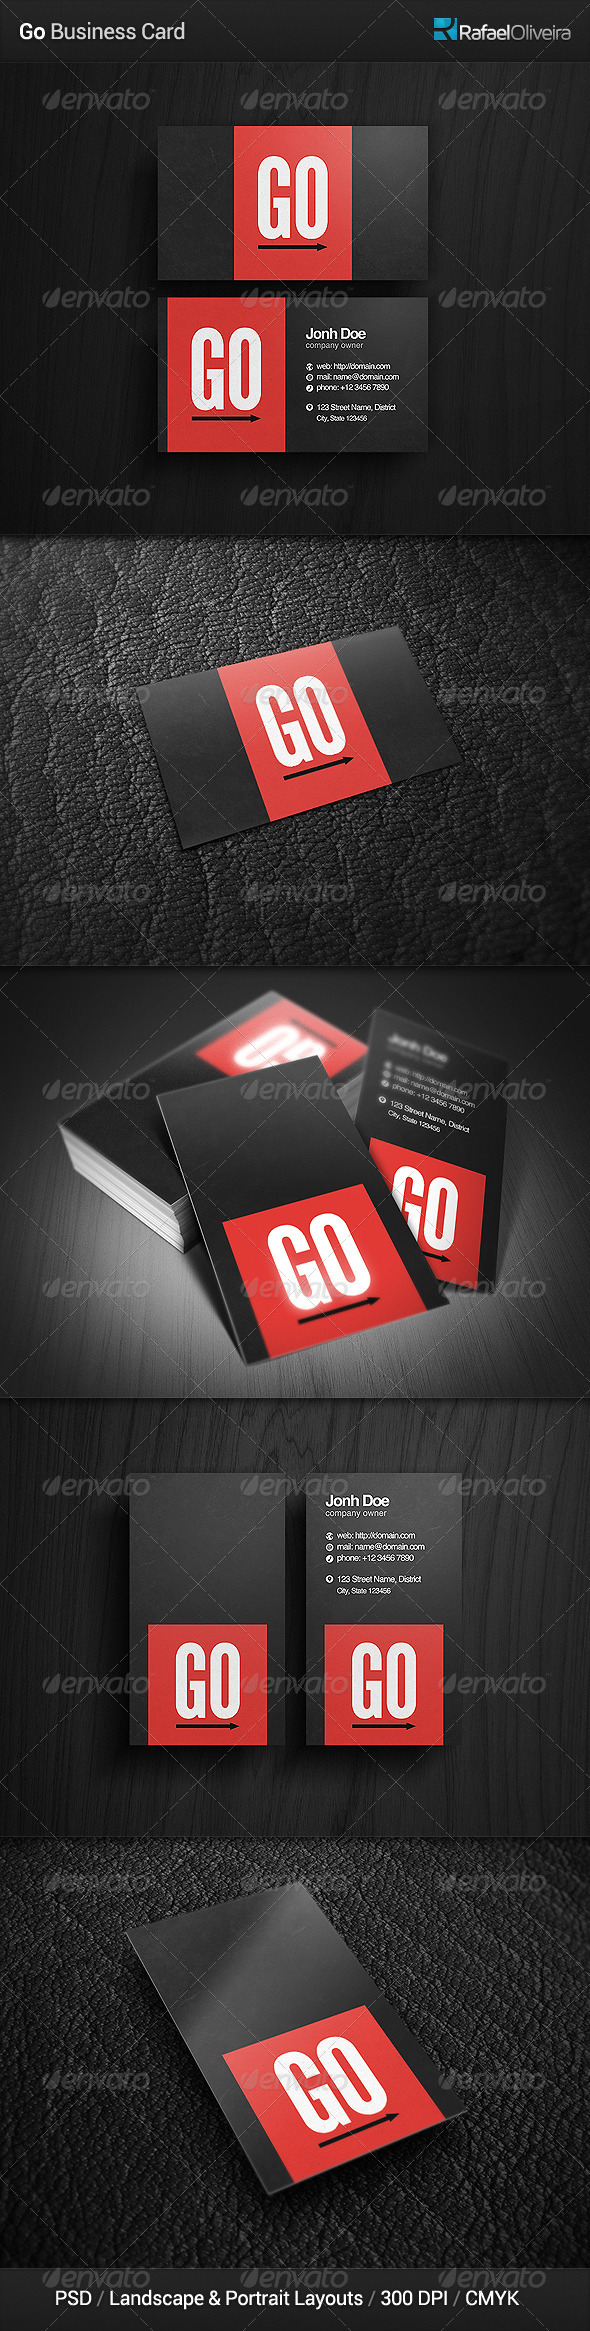 GraphicRiver Go Business Card 4875186